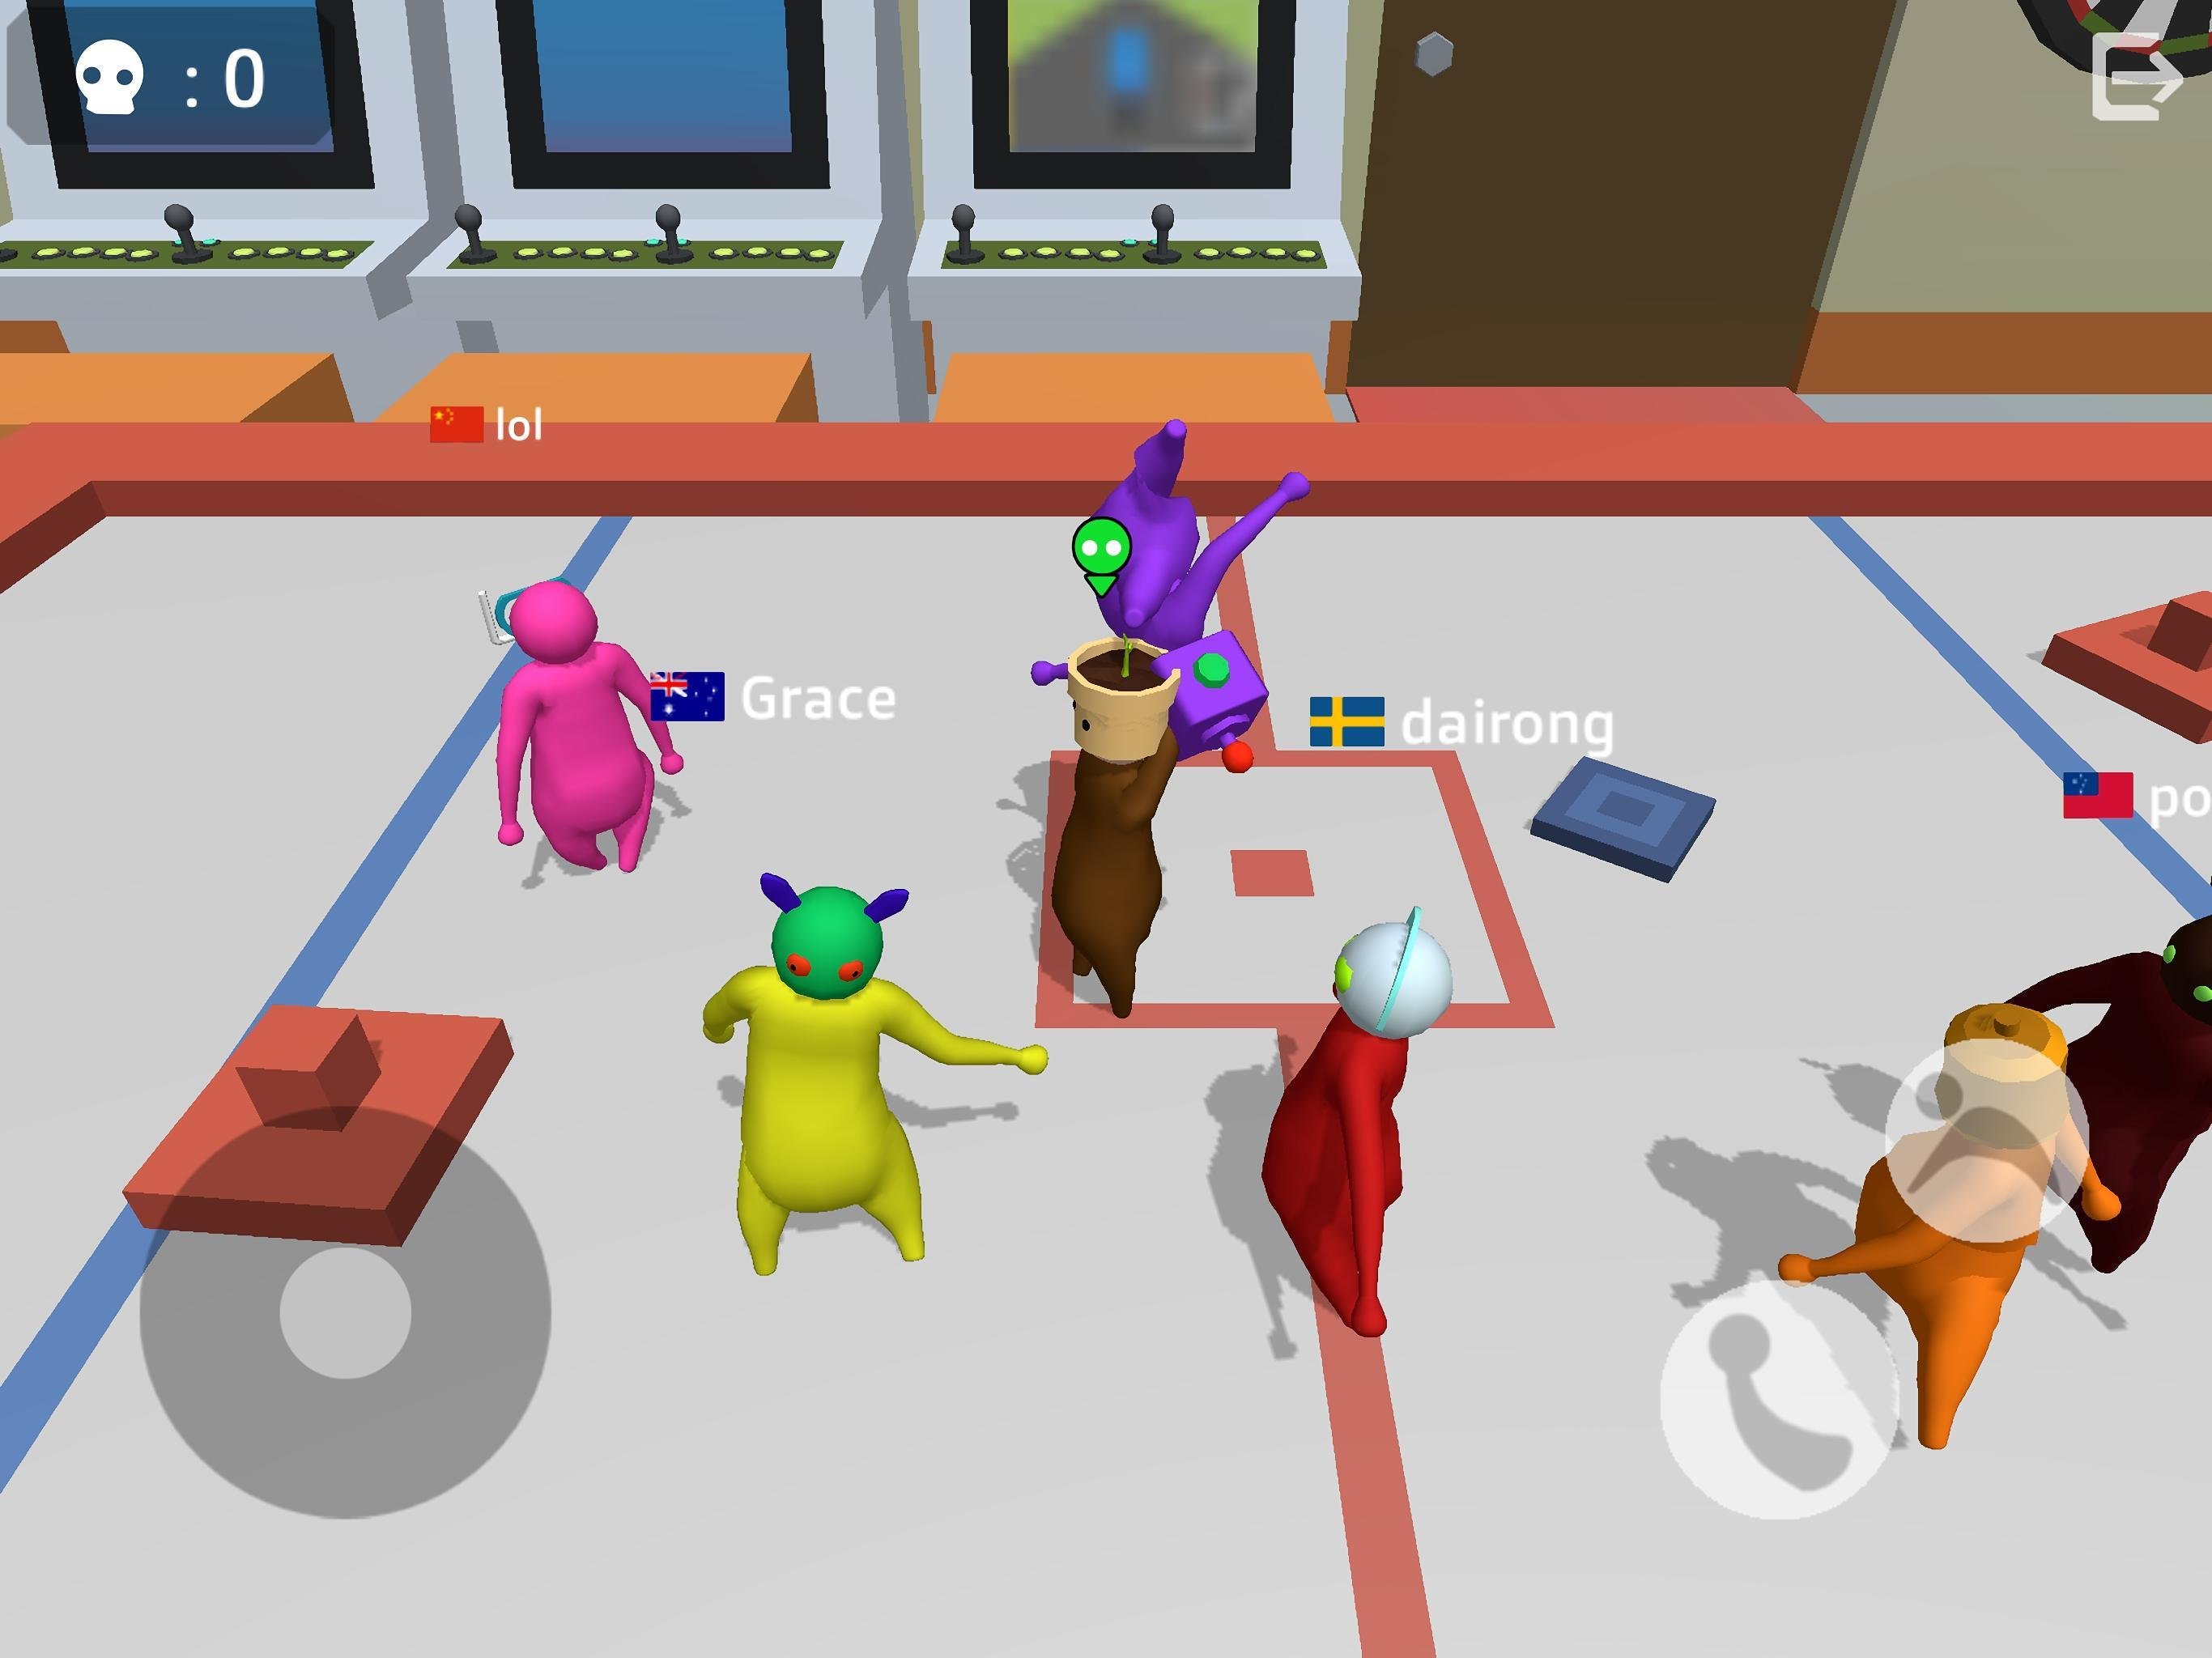 Noodleman.io - Fight Party Games 3.3 Screenshot 19